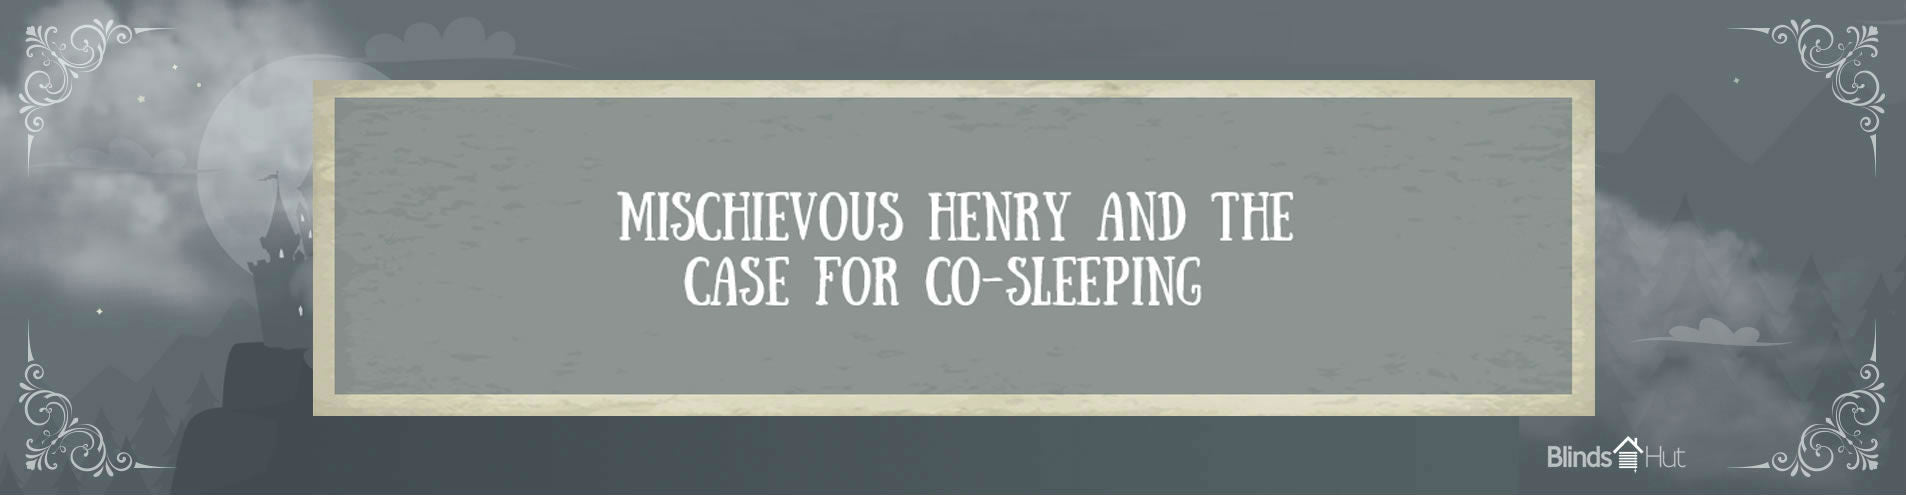 Title card reading: Mischievous Henry and the case for co-sleeping